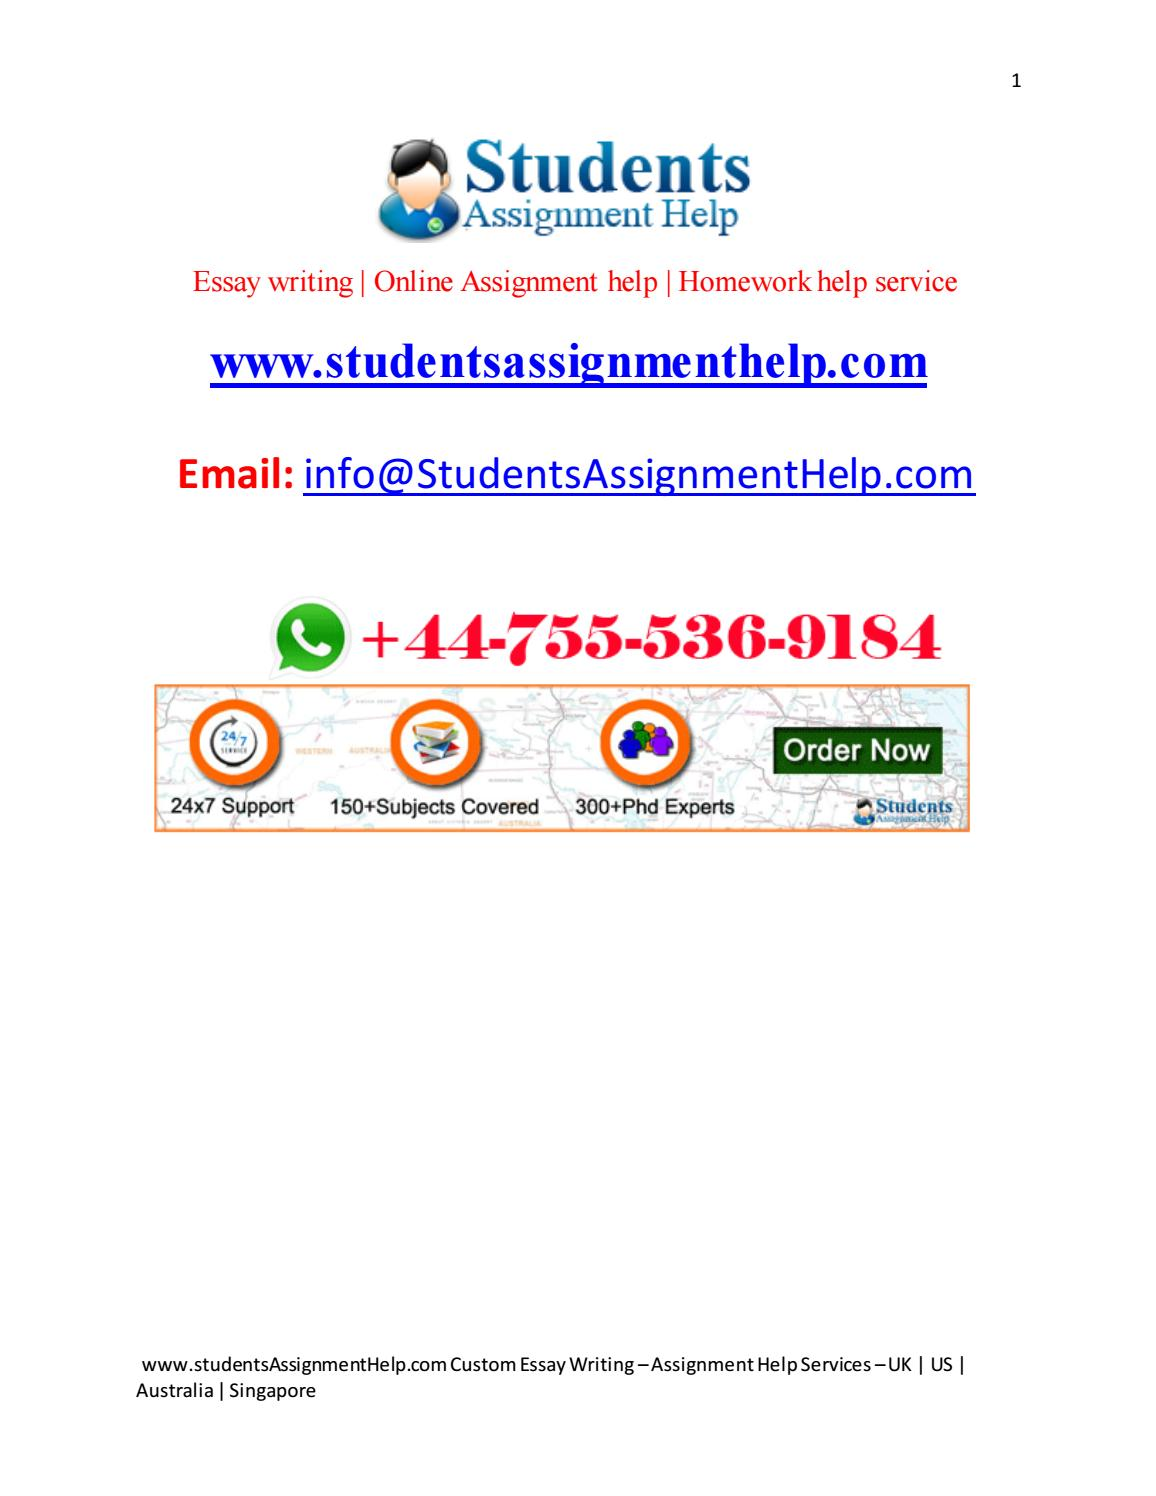 Best Essay and research writing services for Phd